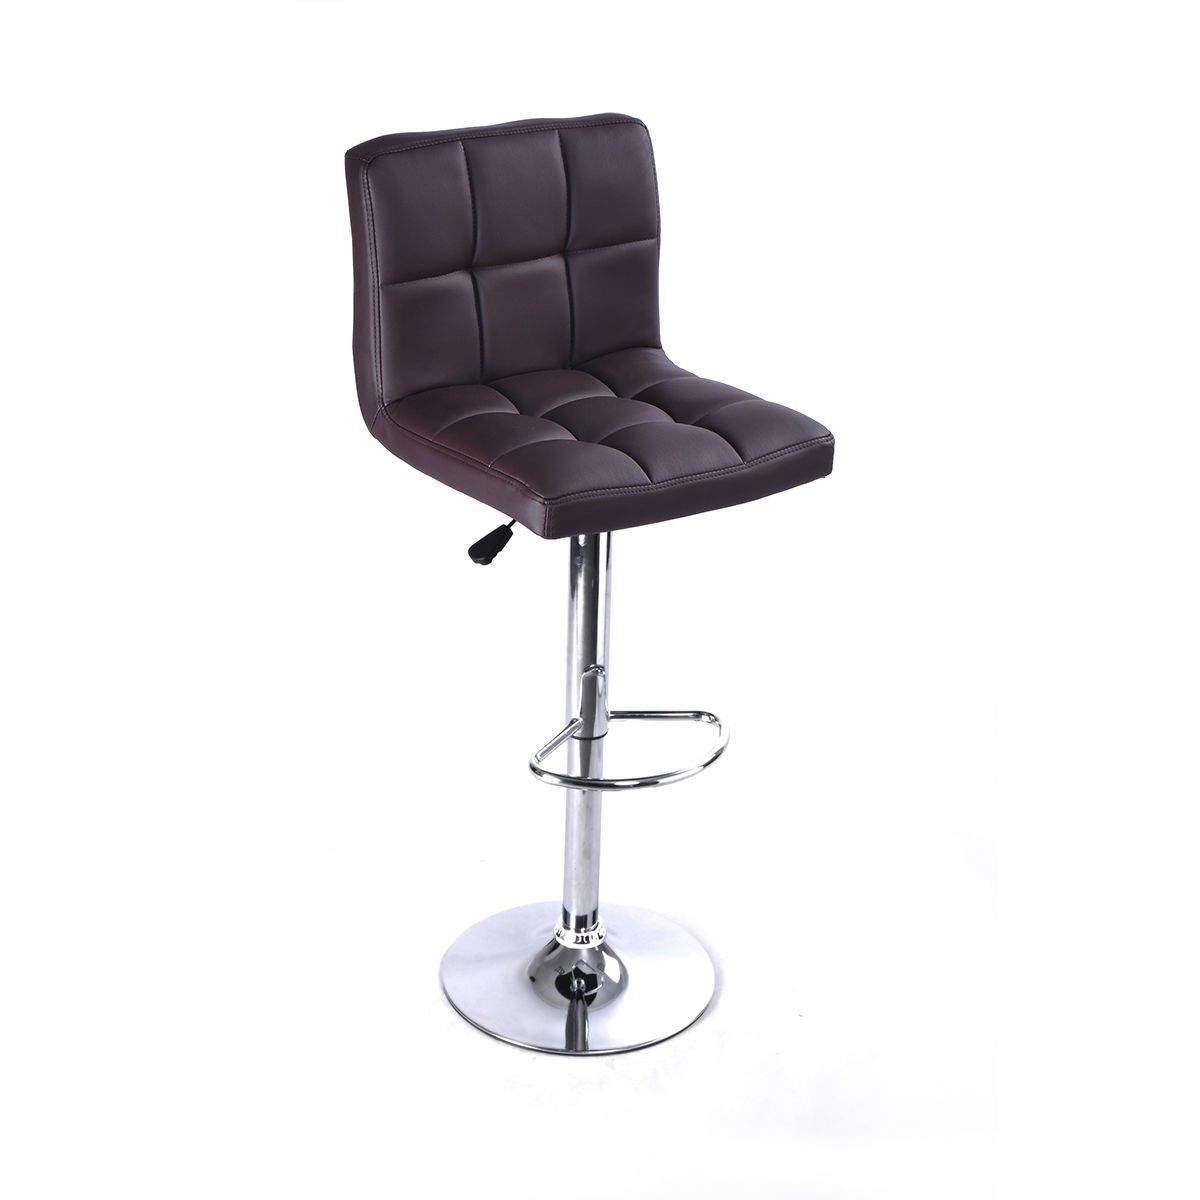 Our bar stools, which will perfectly decor your living room and also add an contemporary touch to your office, bar or restaurant. In addition it is an ideal solution when you have guests over for drinks or dinner. It has a ergonomic back design, cushioned seat, and a wivel design that makes it stylish yet comfortable at the same time. #freeshipping